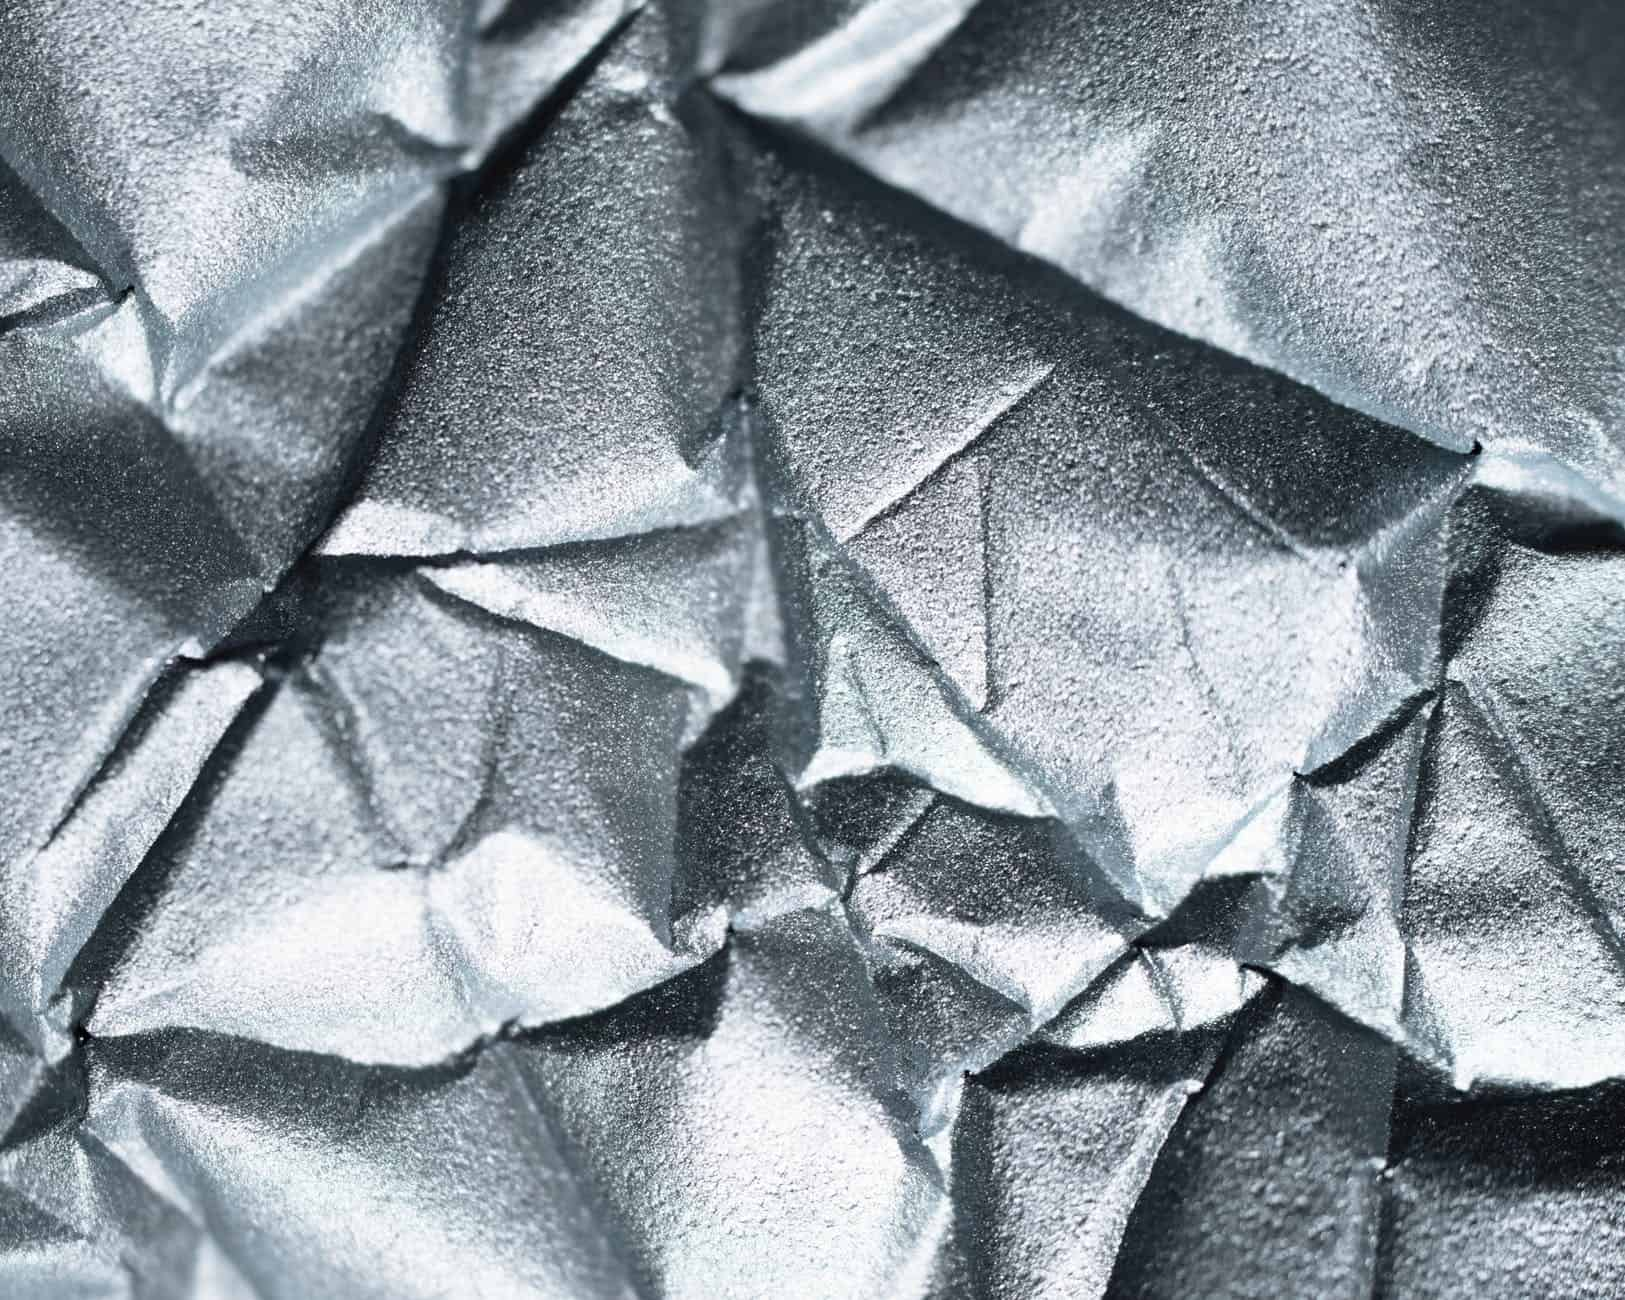 Crumpled sheet of silver